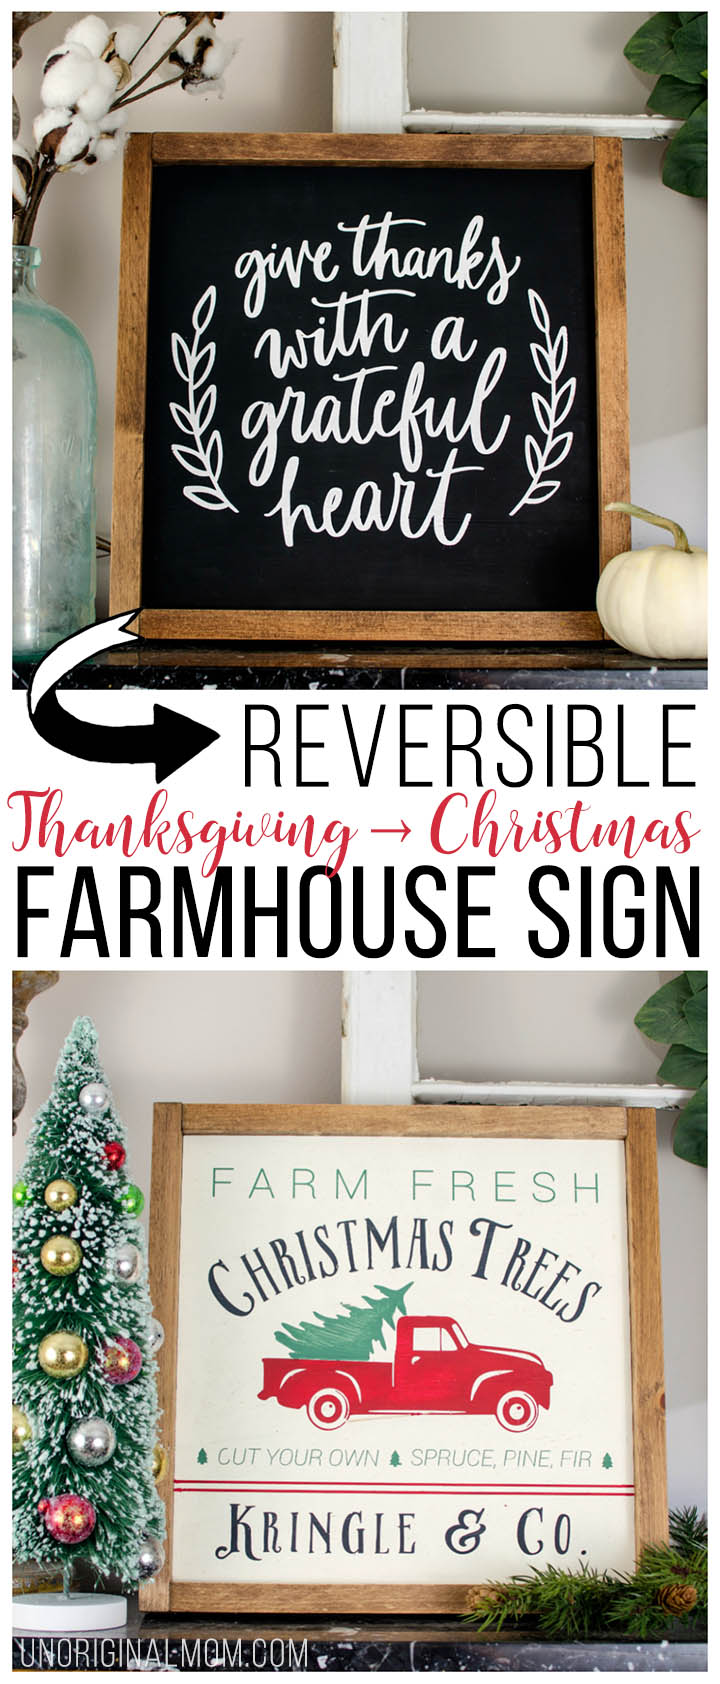 Reversible Thanksgiving-Christmas painted farmhouse sign, with a free cut file! #farmhousesign #freecutfile #christmastreefarmsign #silhouette #christmasdecor #farmhousechristmasdecor #diyfarmhousesign